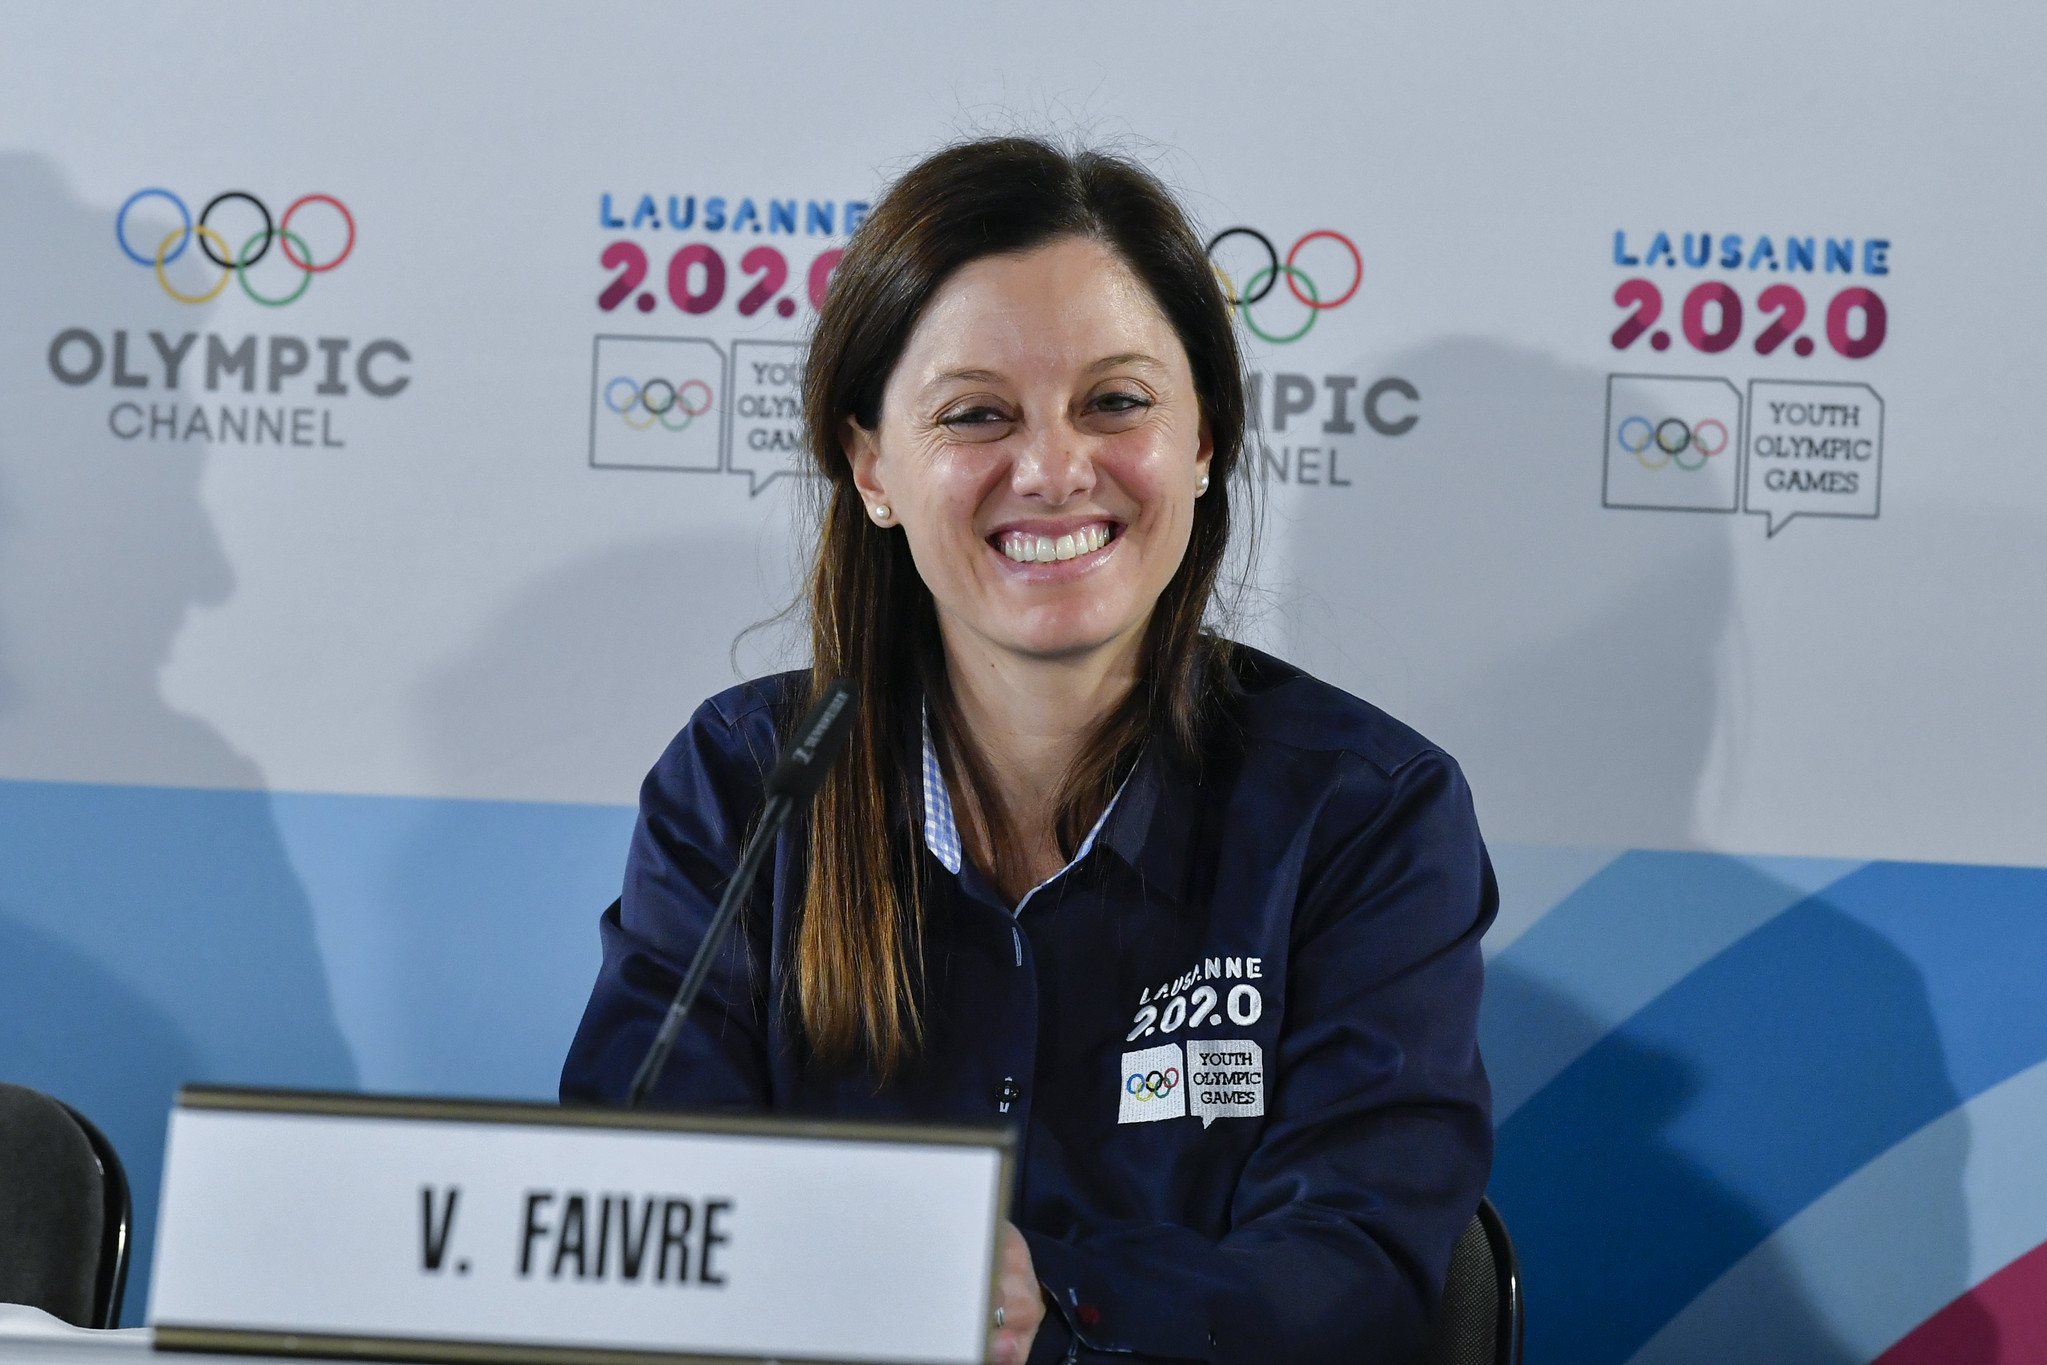 Lausanne 2020 President Virginie Faivre said 170,000 spectators had attended the Games so far ©IOC